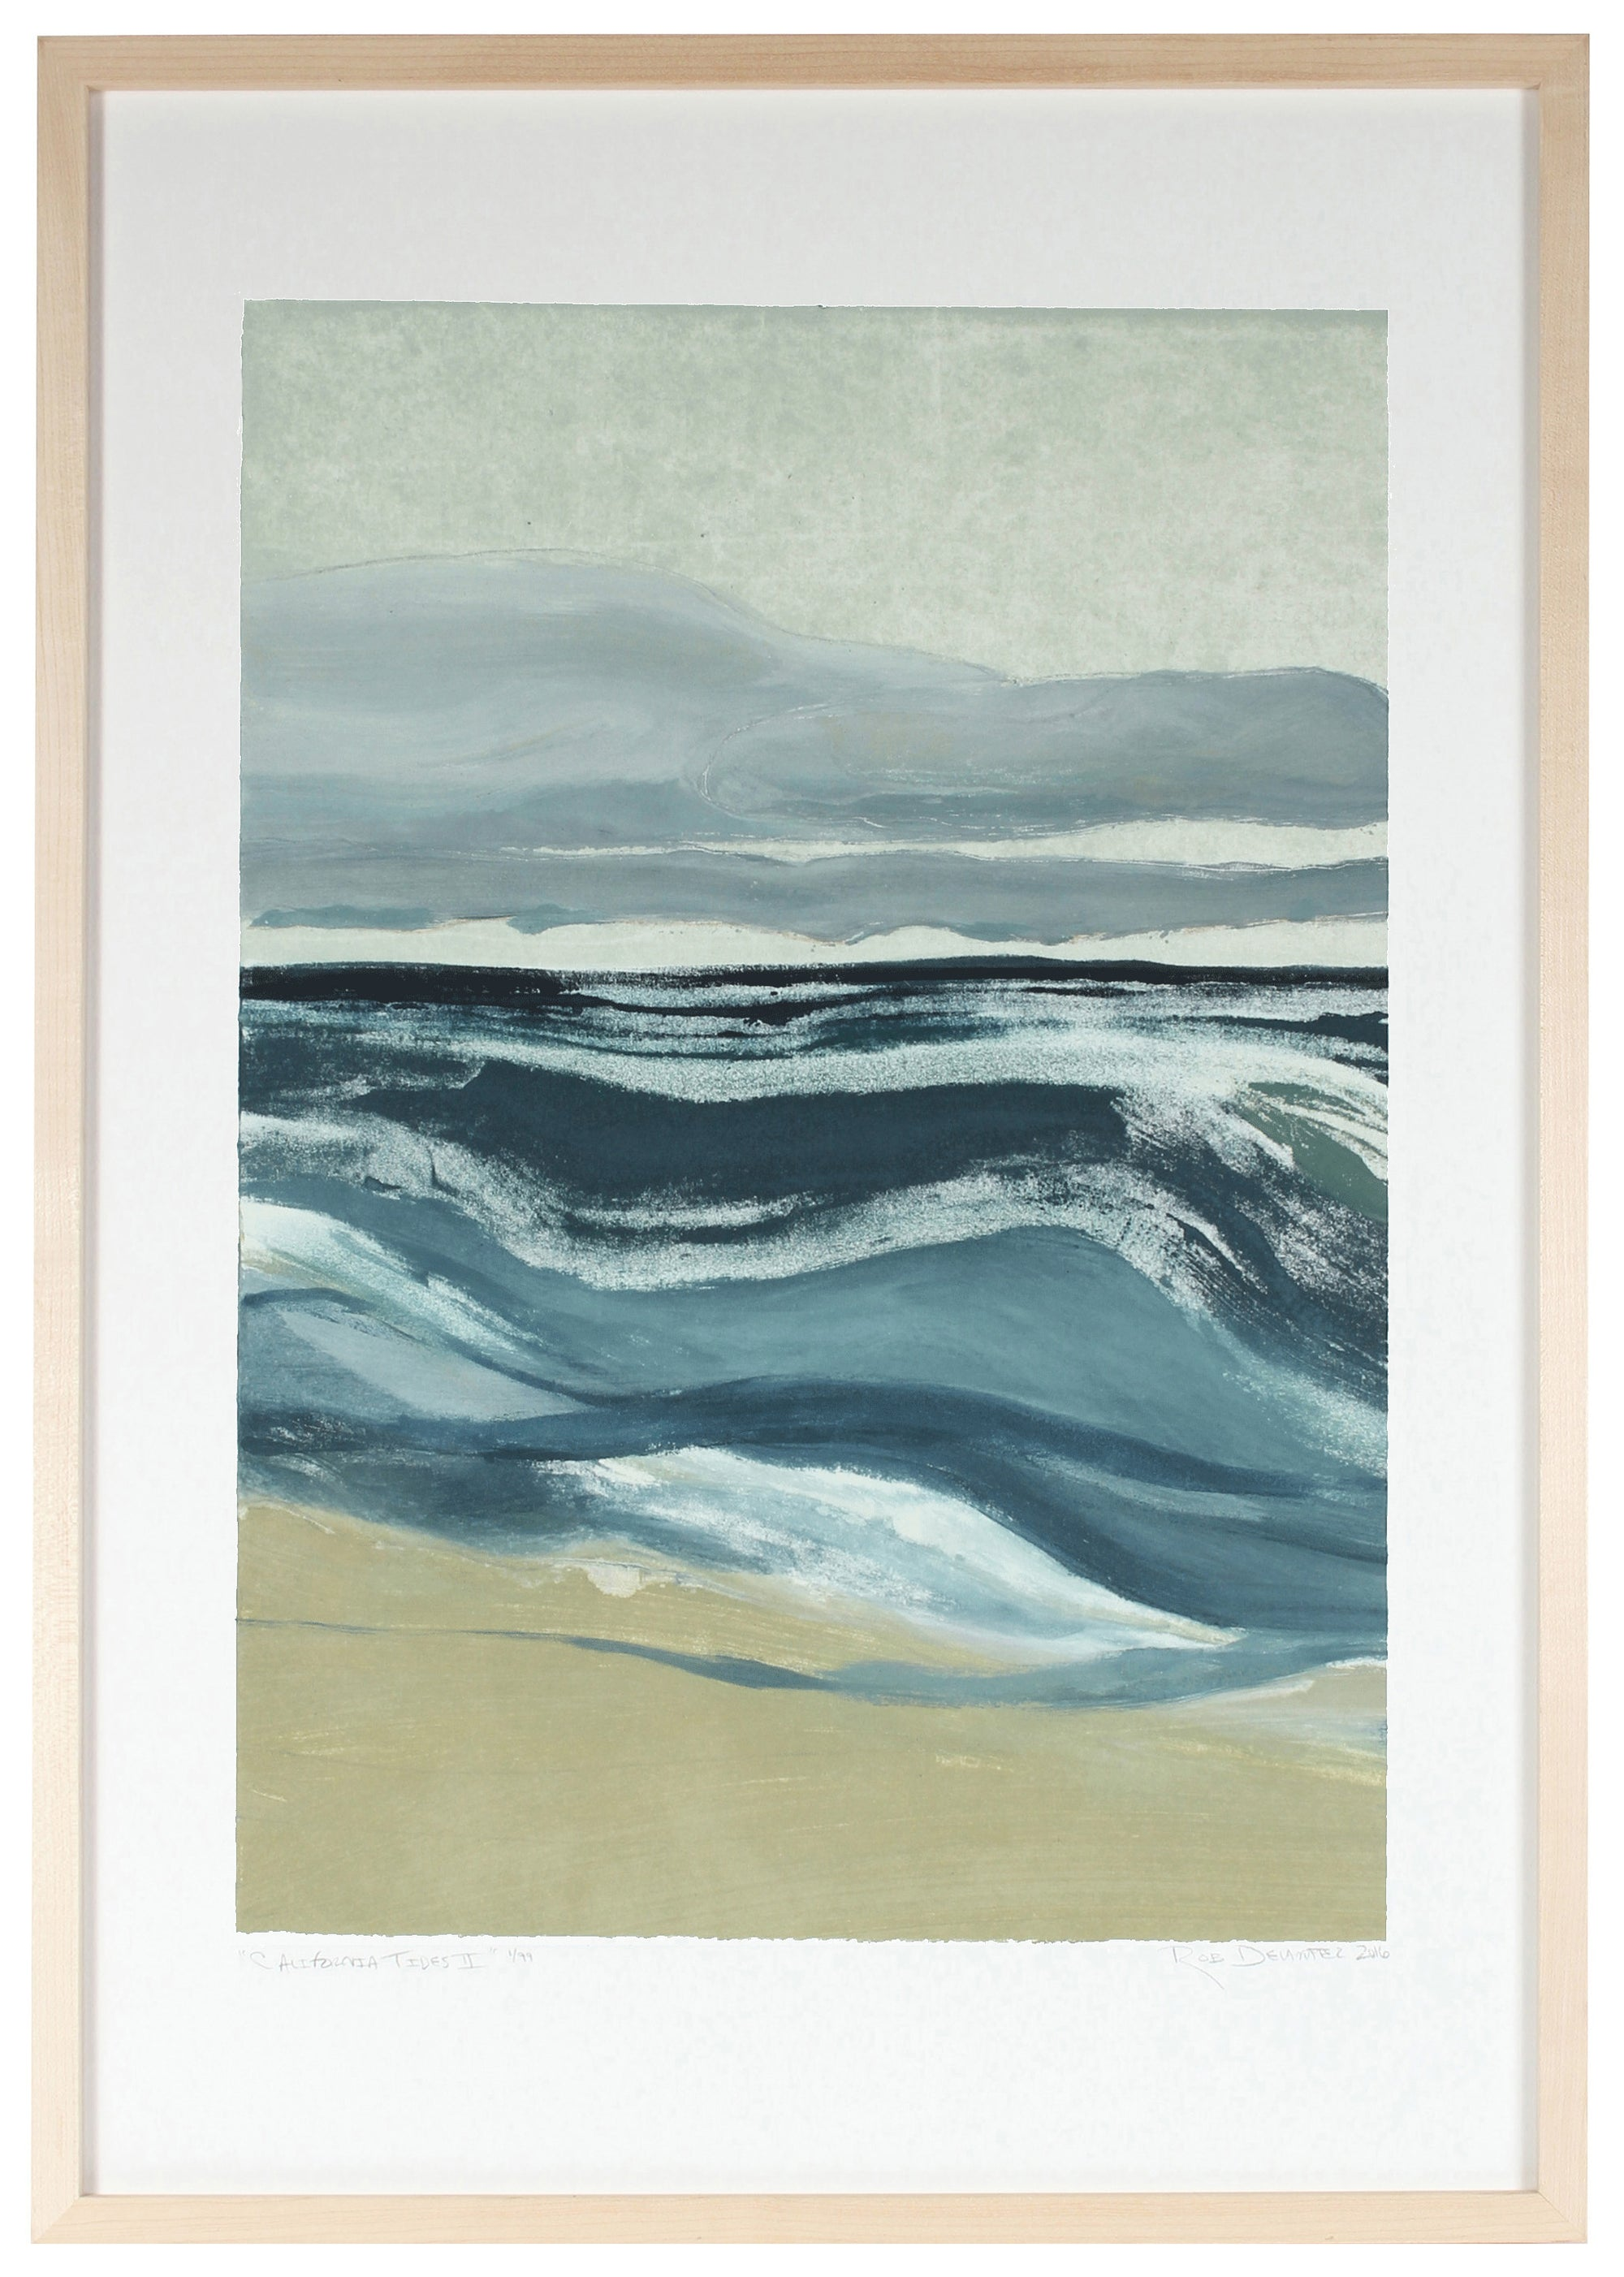 <i>California Tides I</i> <br>Limited Edition Archival Print <br><br>ART-07724